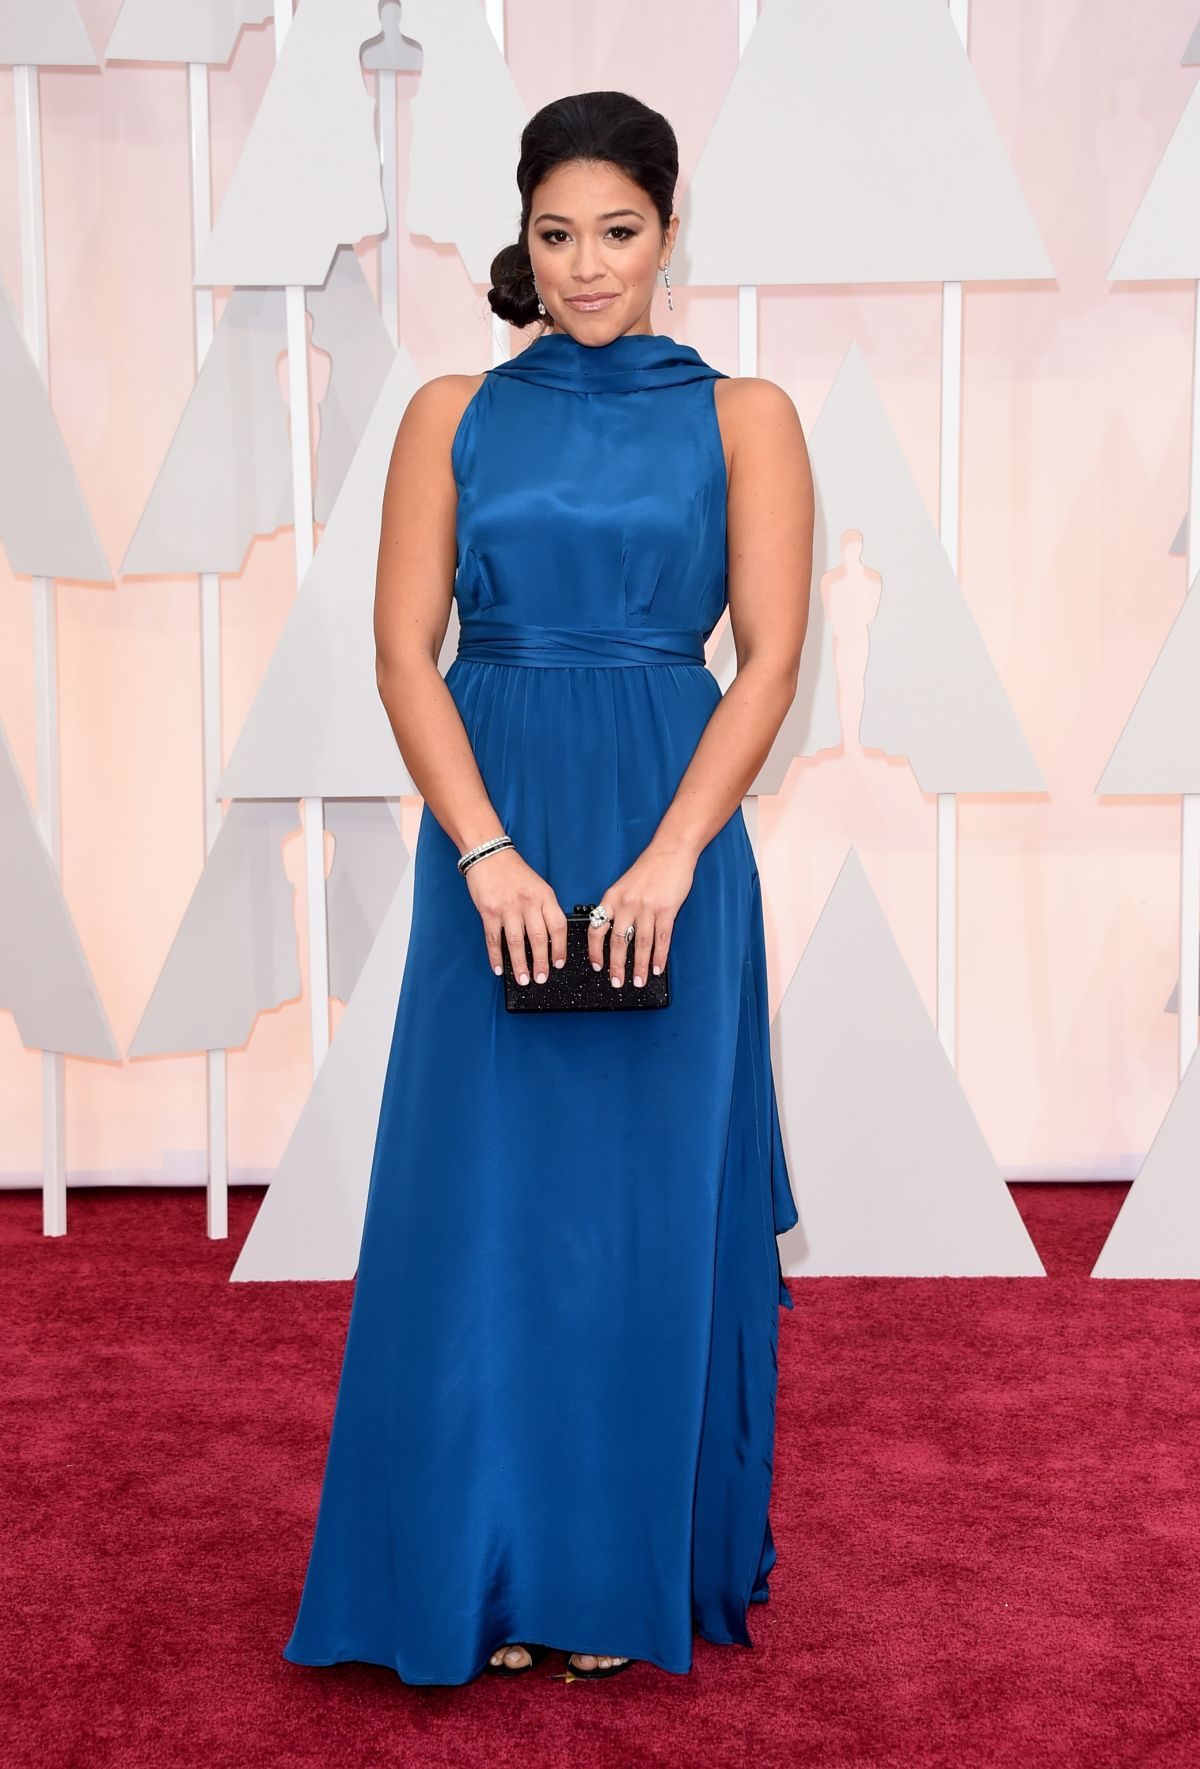 GINA RODRIGUEZ at 87th Annual Academy Awards at the Dolby Theatre in Hollywood